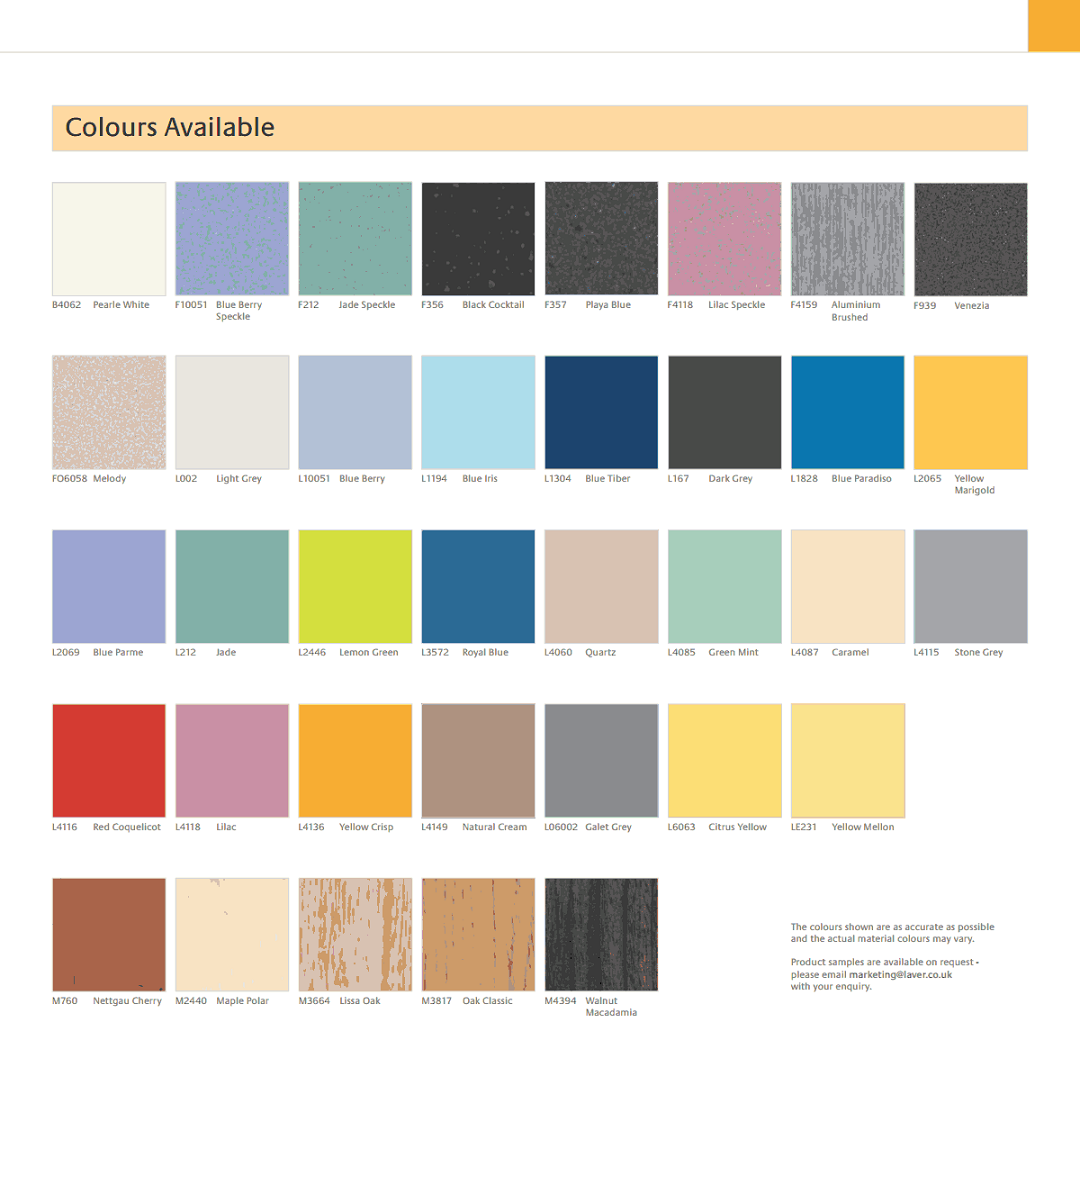 Washroom Colour ranges